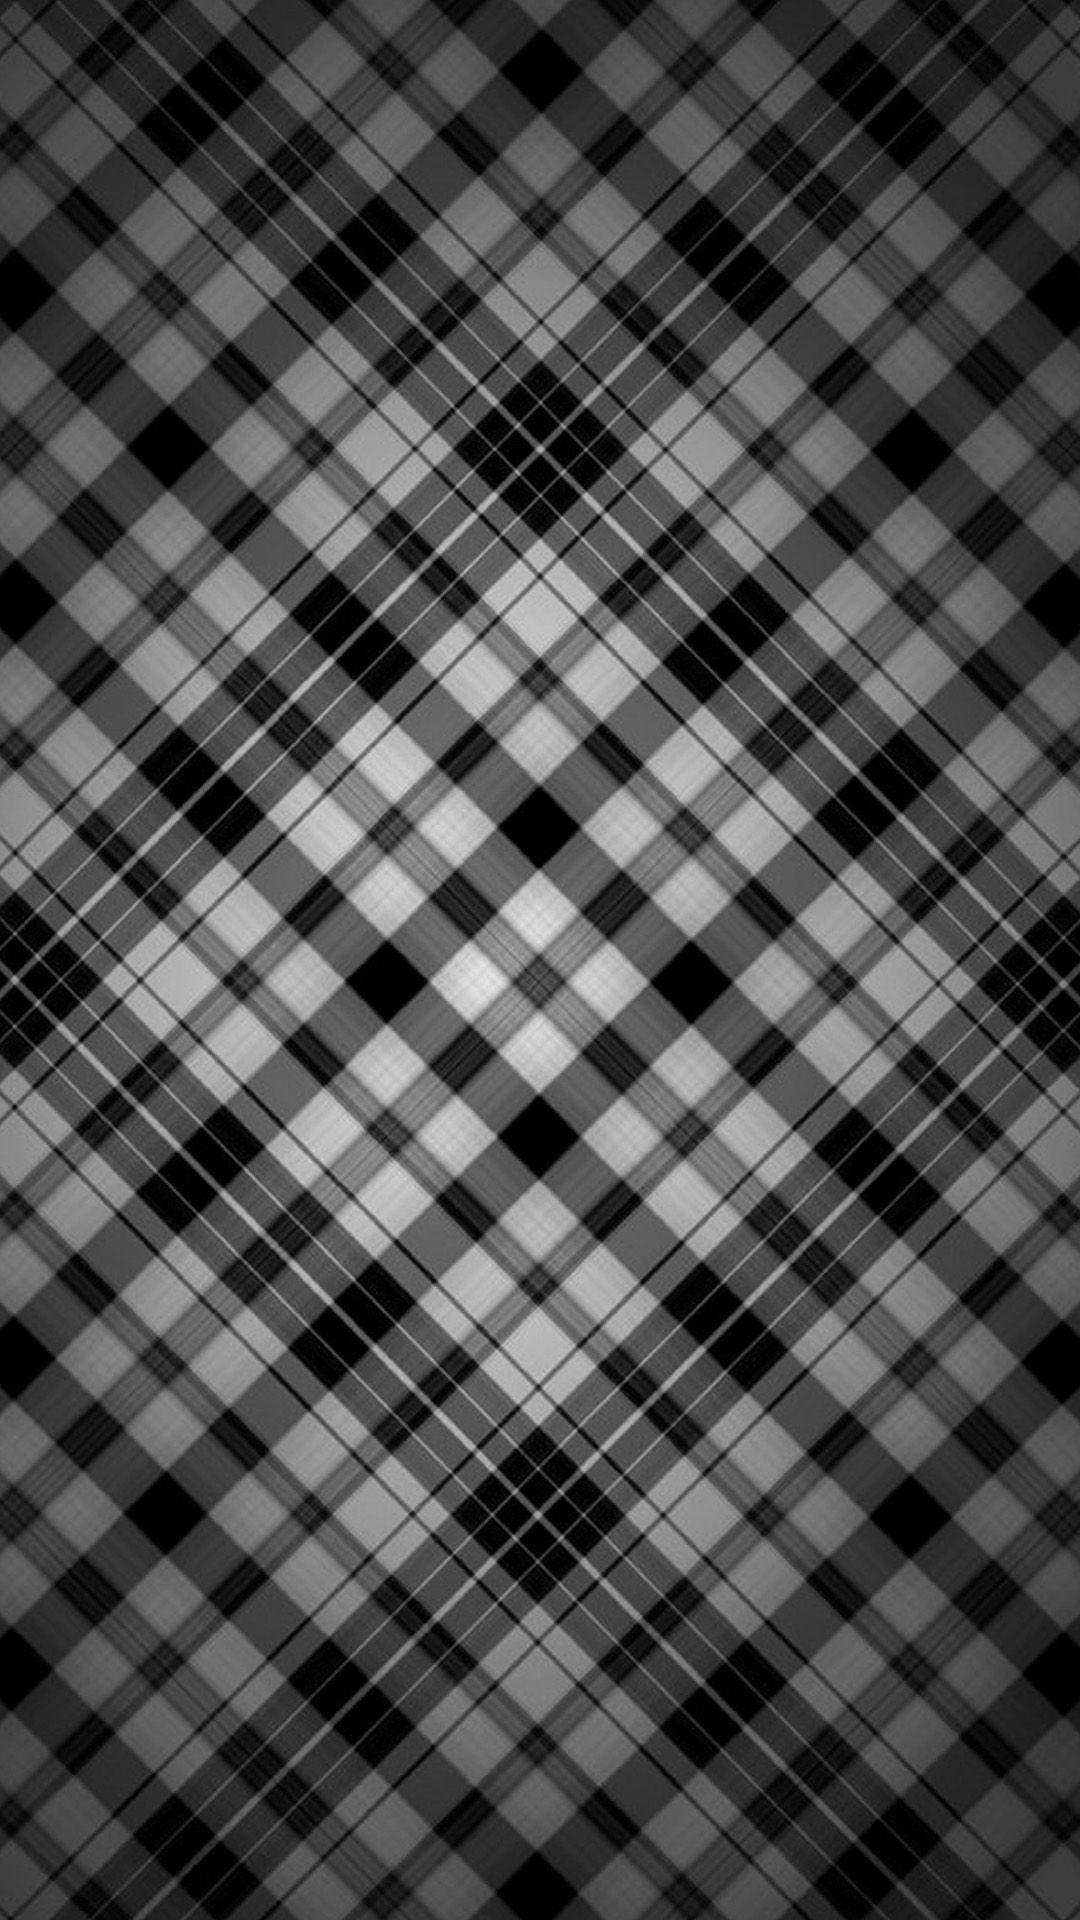 Black And White Check Patterns Iphone Wallpaper Black Wallpaper